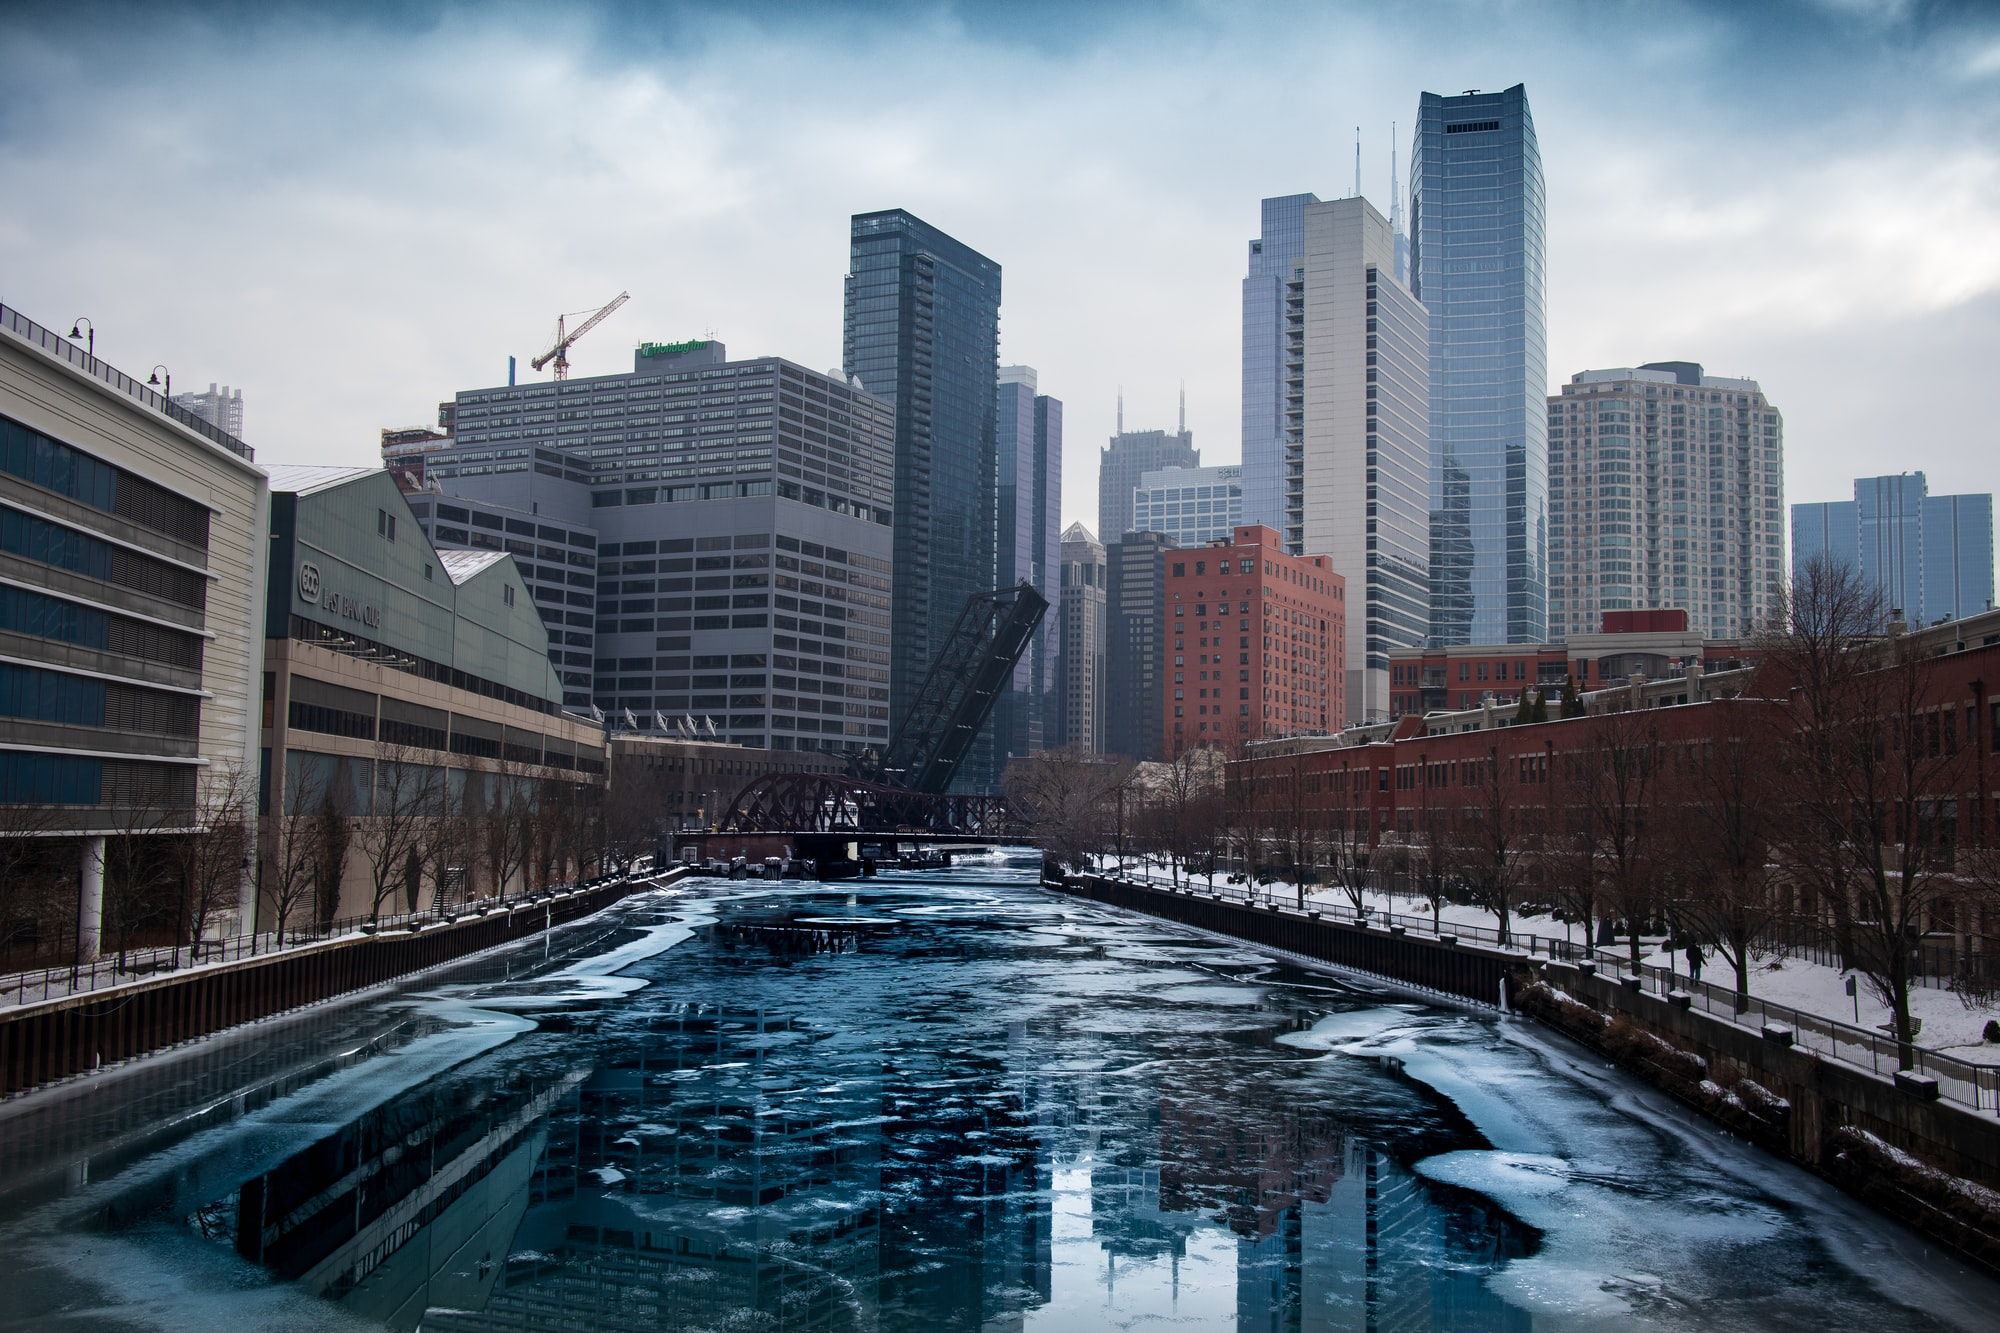 Frozen Chicago 2018